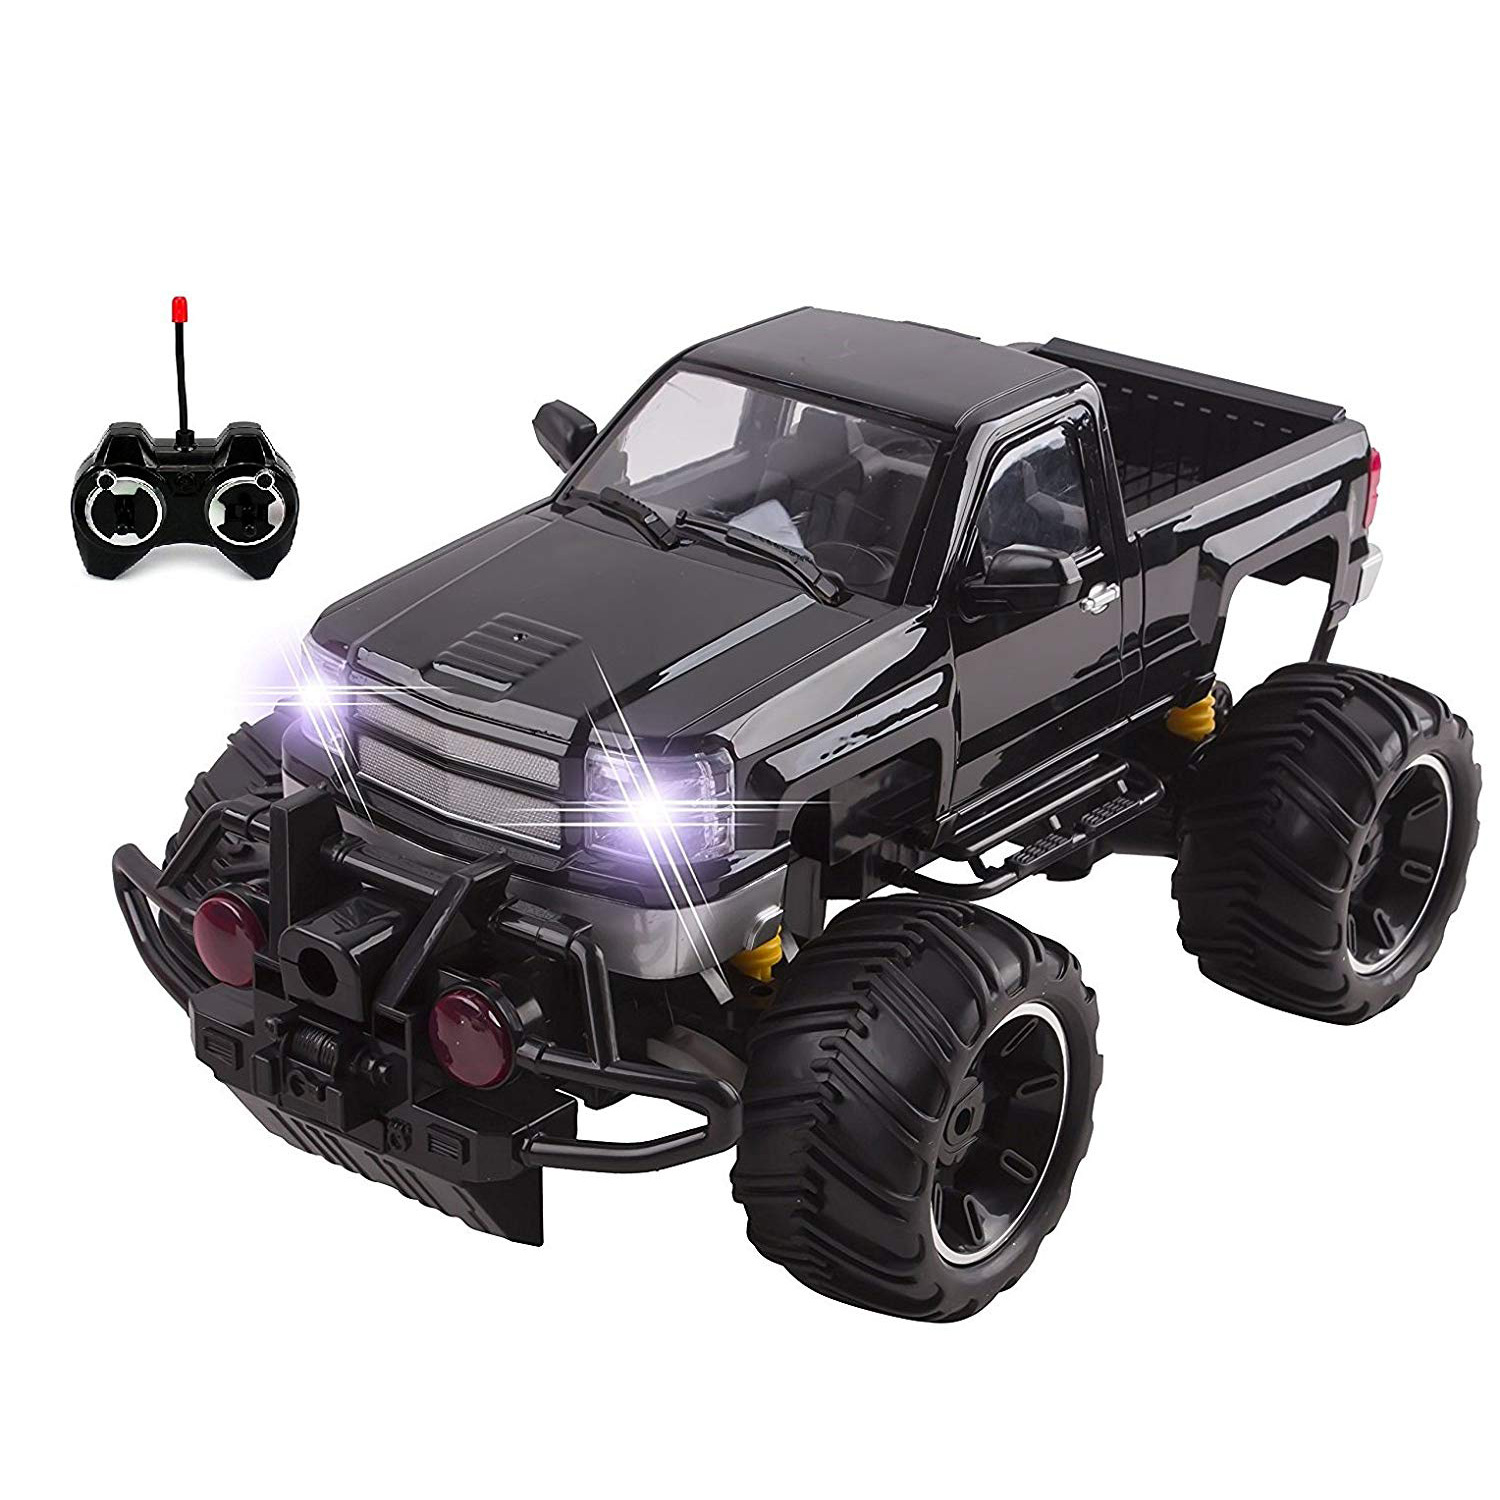 RC Truck Big Wheel Beast Monster Truck Remote Control Doors Opening Car Light Up LED Headlights Ready to Run INCLUDES RECHARGEABLE BATTERY 1:14 Size Off-Road Pick Up Buggy Toy (Black)